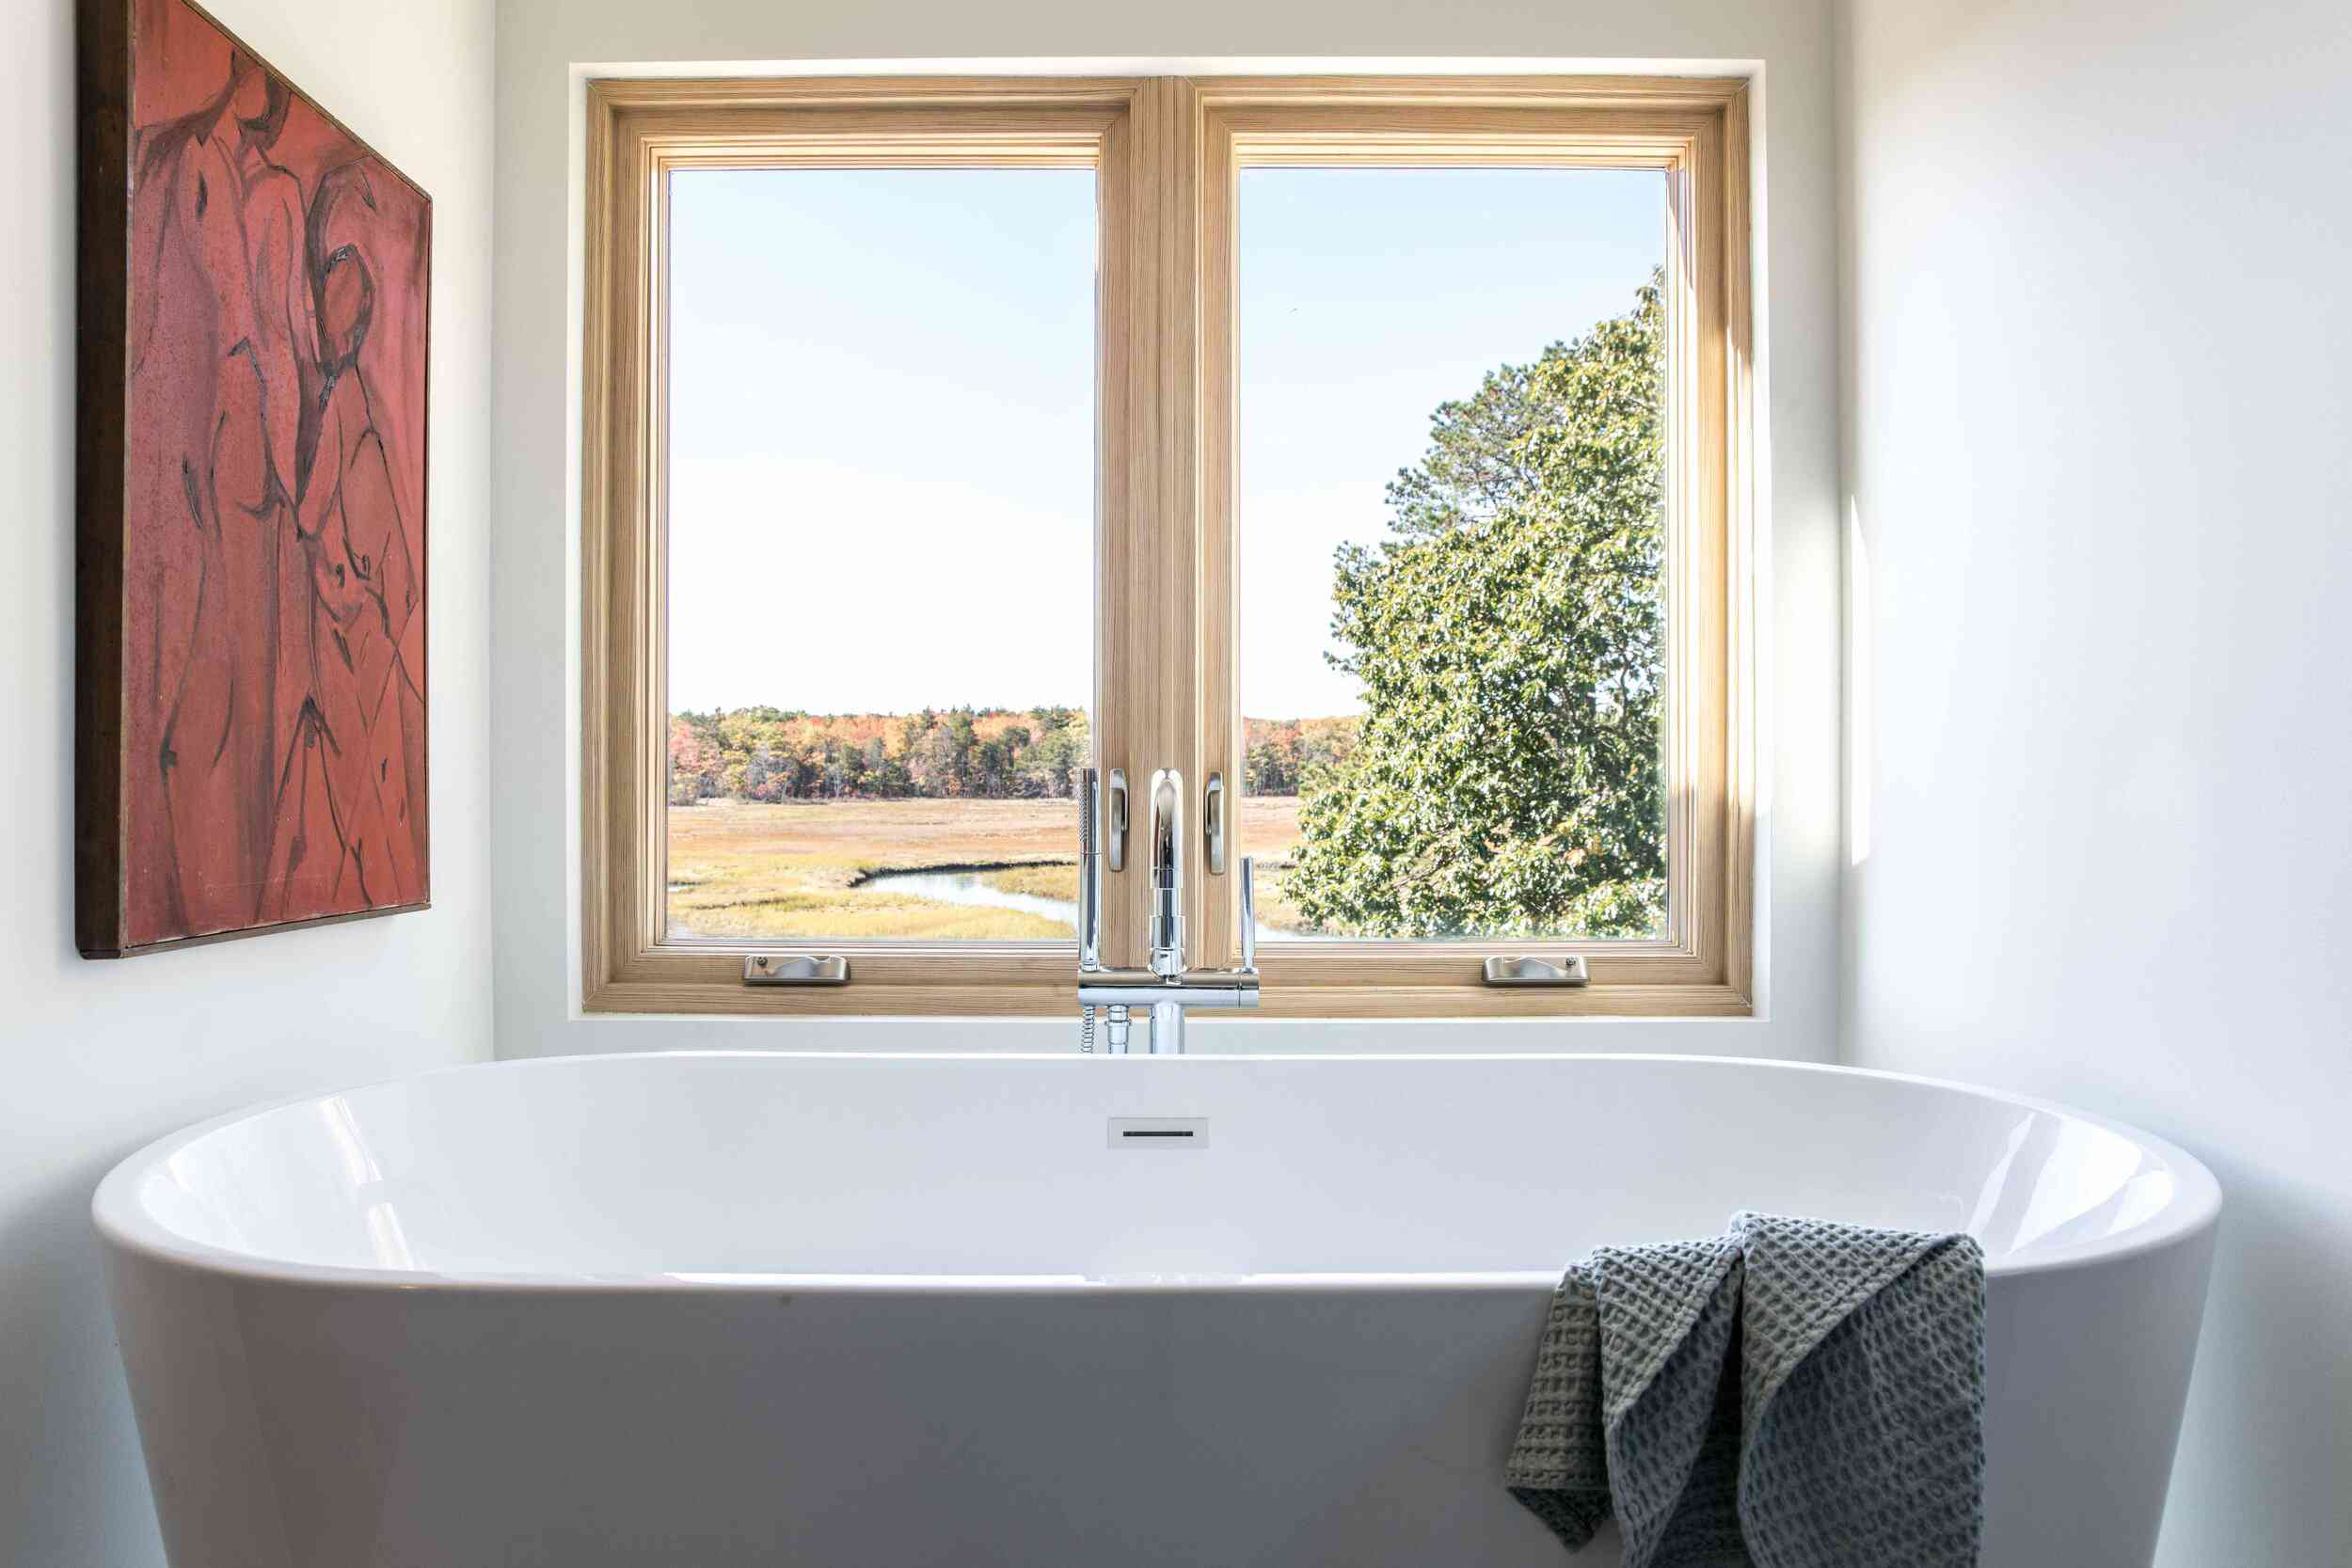 A small bathroom with a gray freestanding tub and a large red painting on the wall